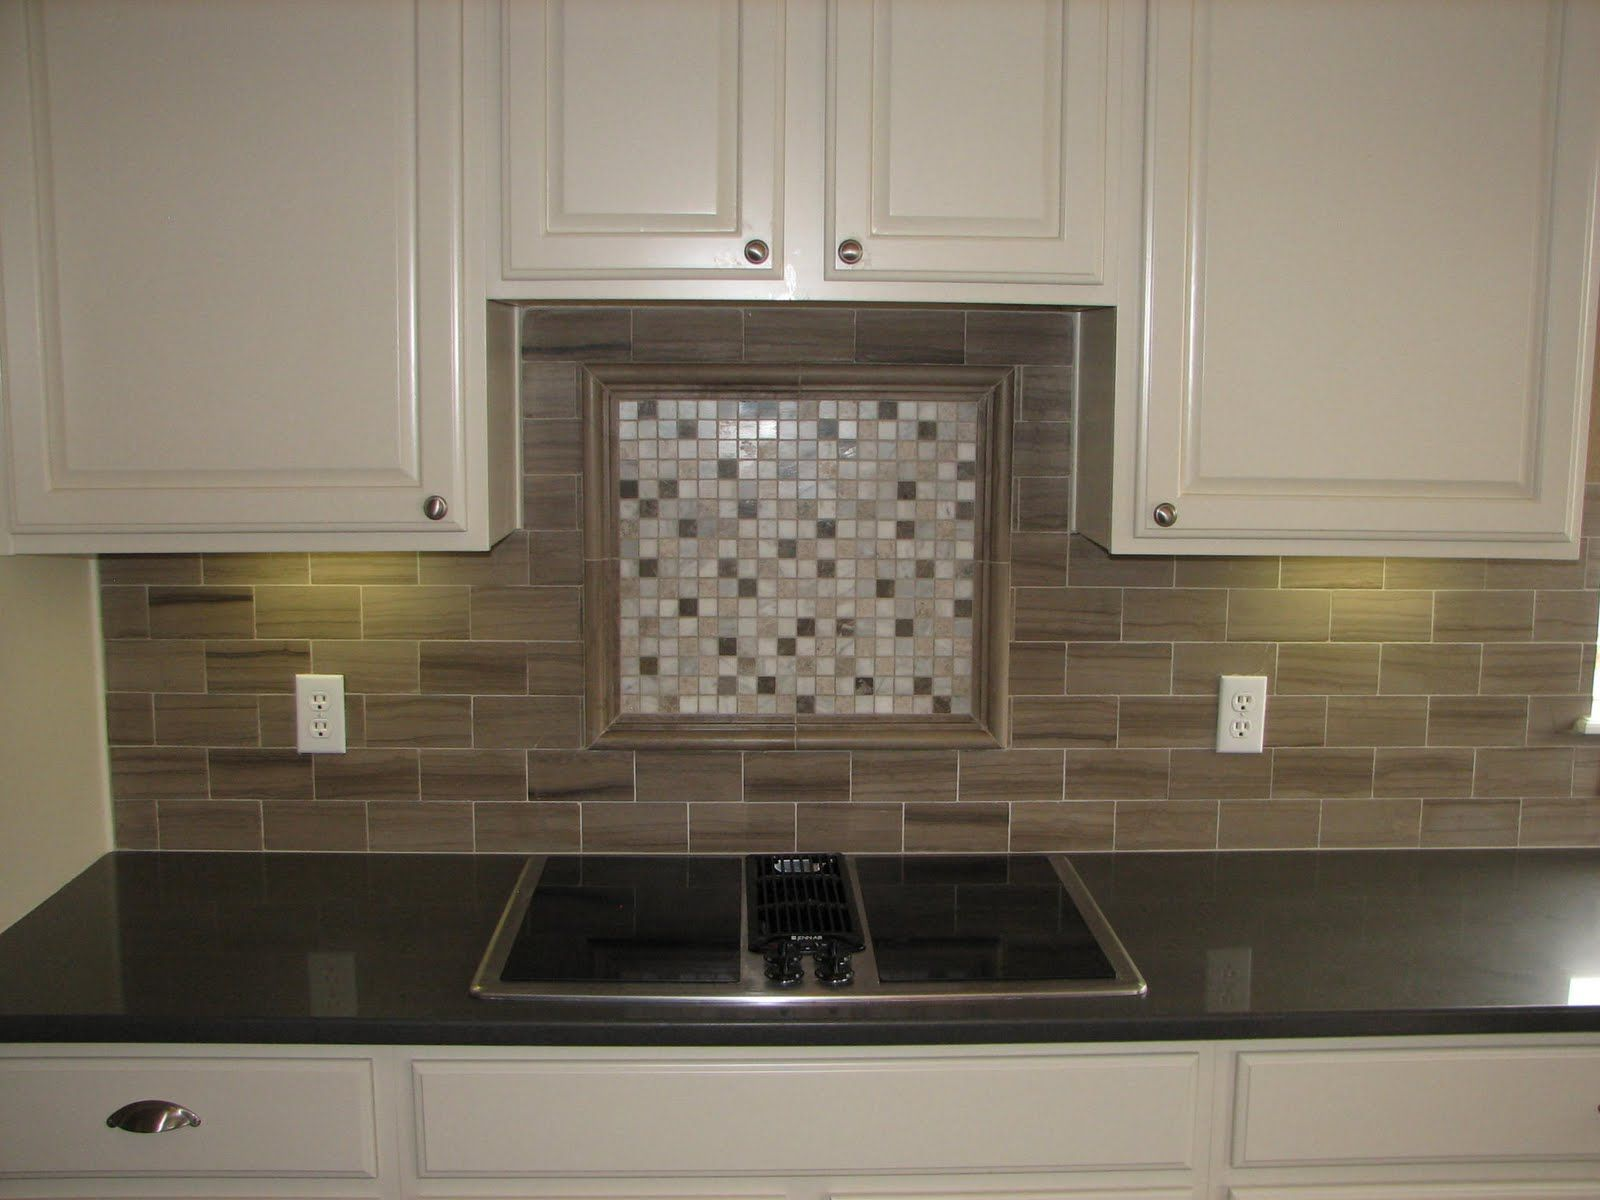 Tile backsplash with black cuntertop ideas tile design backsplash photos backsplash design - Kitchen backsplash ceramic tile designs ...